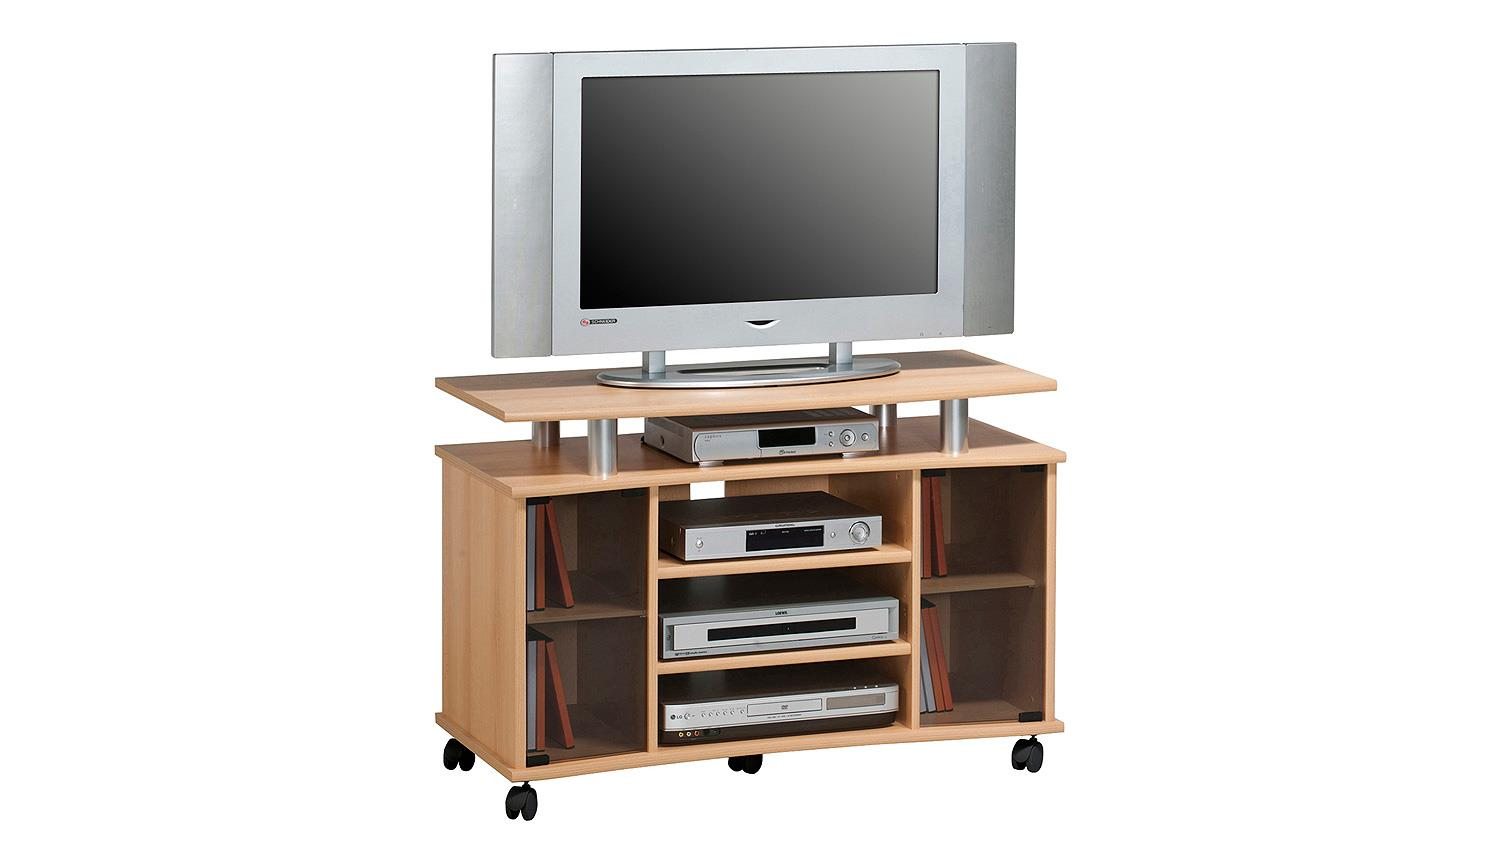 tv rack buche tv hifi rack buche mit rollen getnten glas. Black Bedroom Furniture Sets. Home Design Ideas